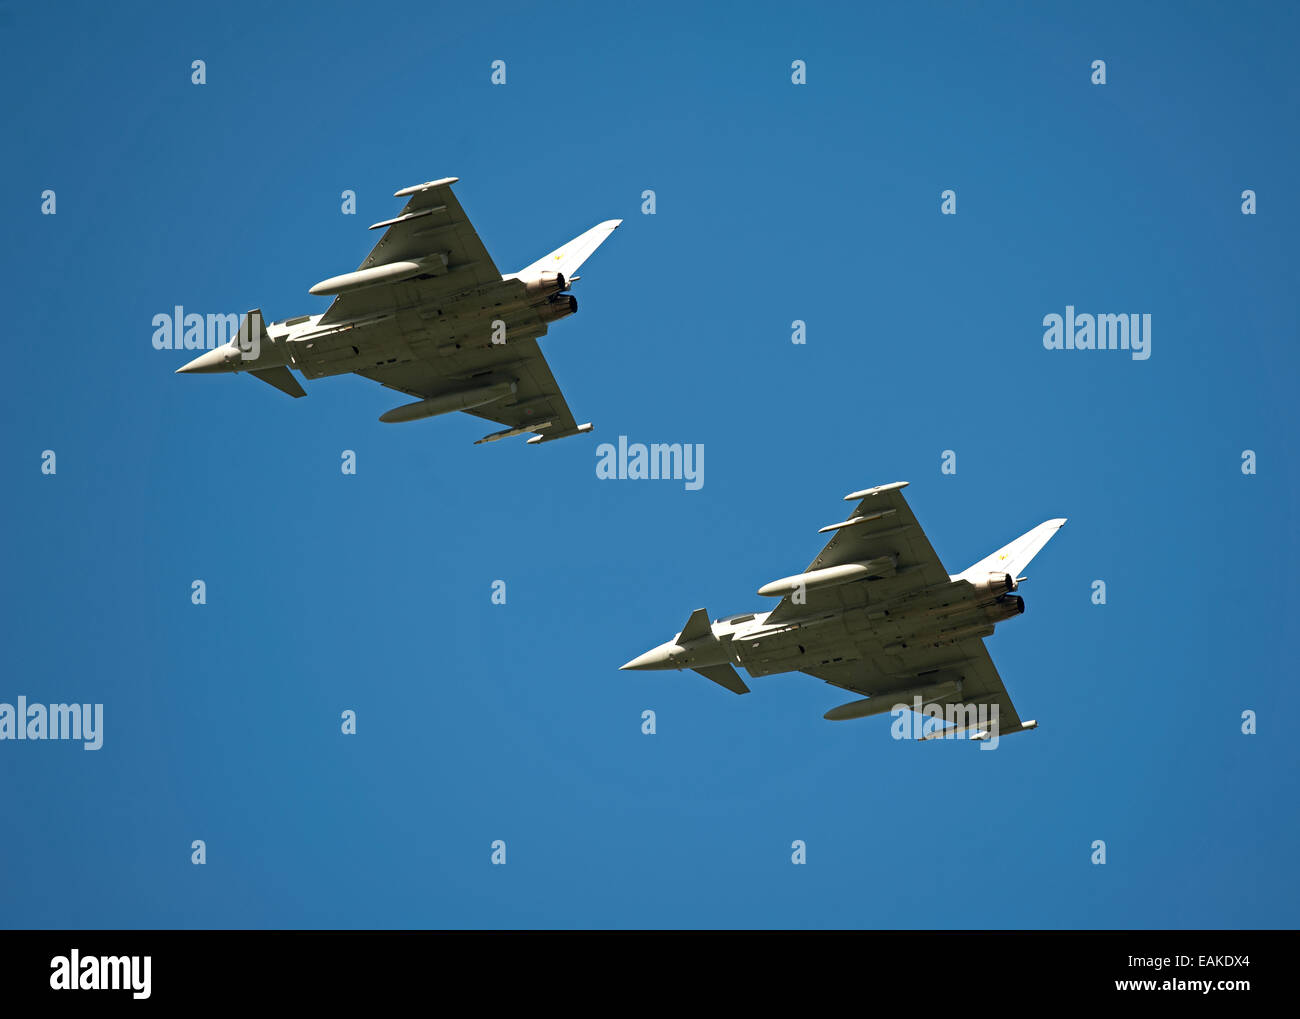 Paired flypast, Eurofighter Typhoon FRG4s on approach to RAF Lossiemouth, Morayshire. SCO 9153 - Stock Image